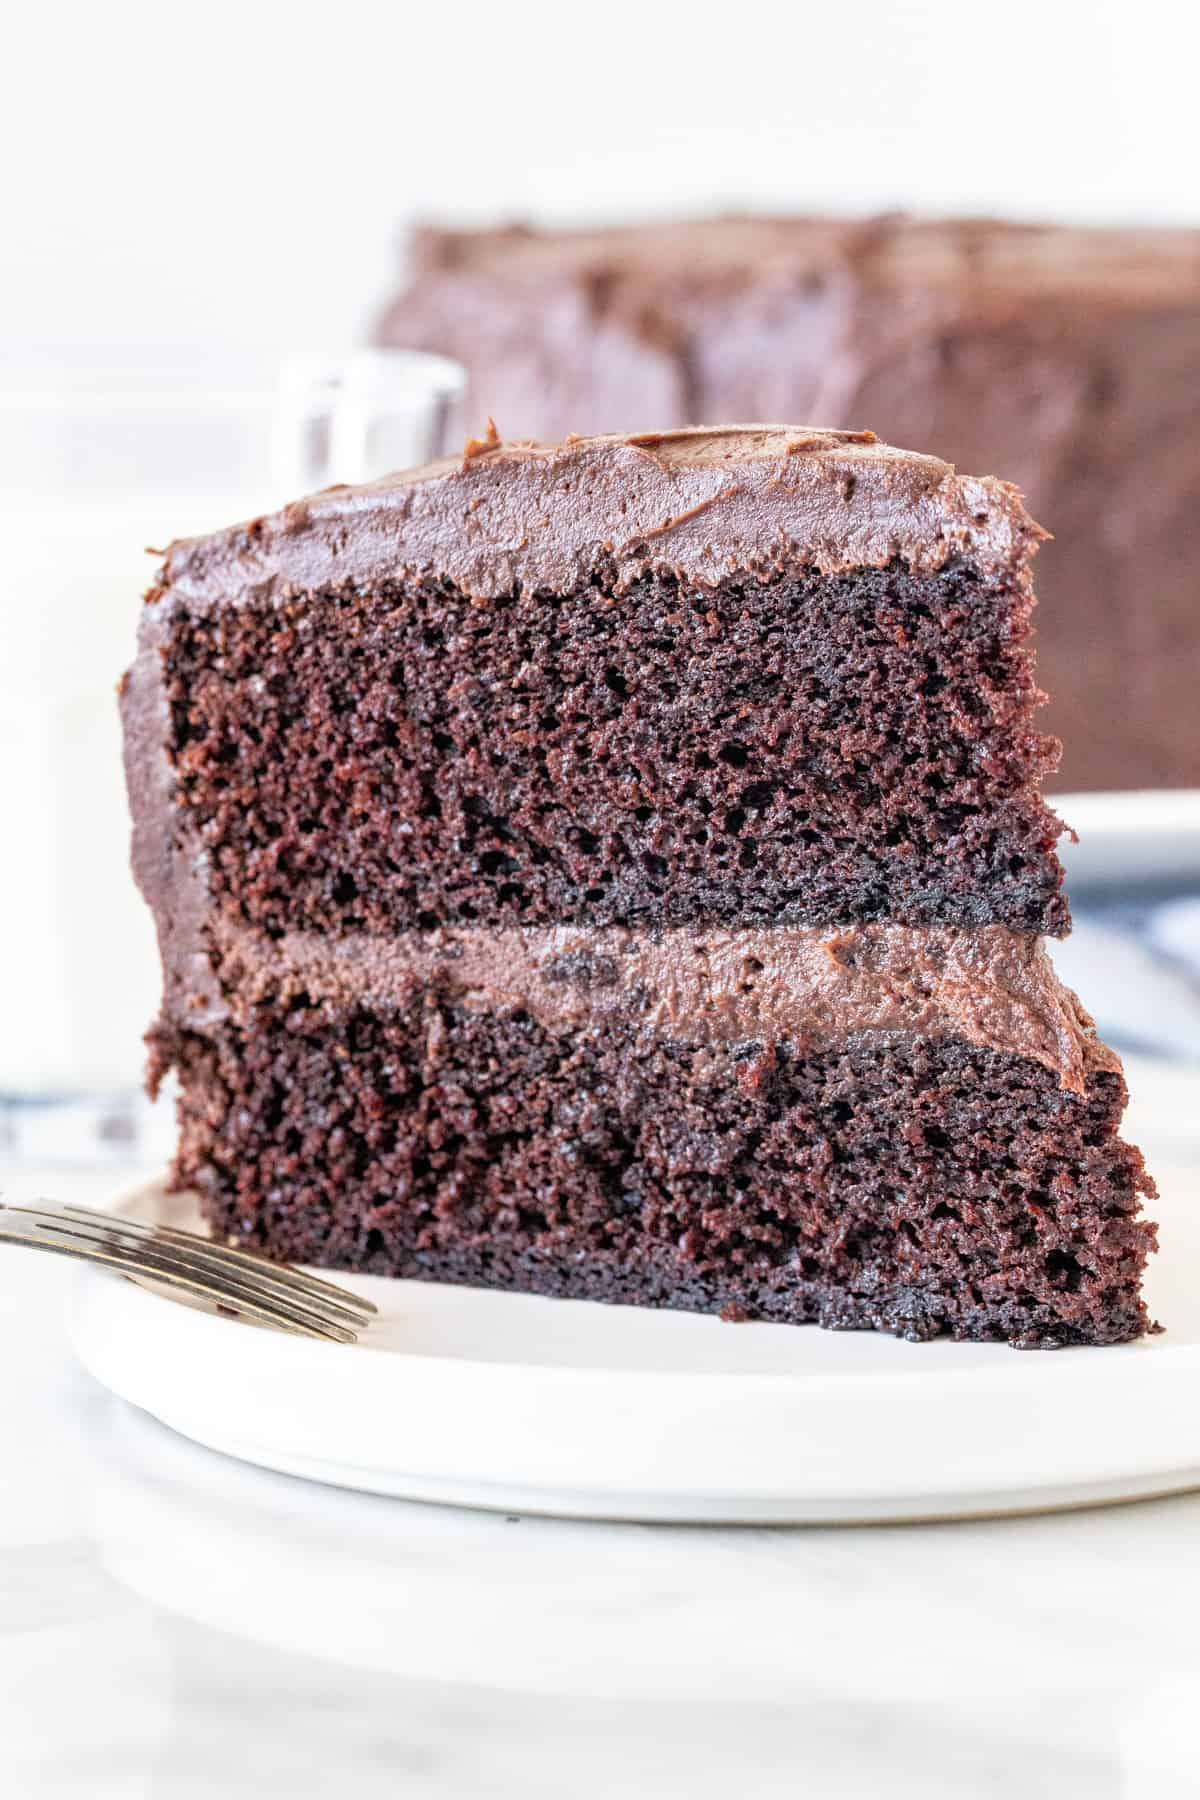 Slice of chocolate cake with chocolate frosting.